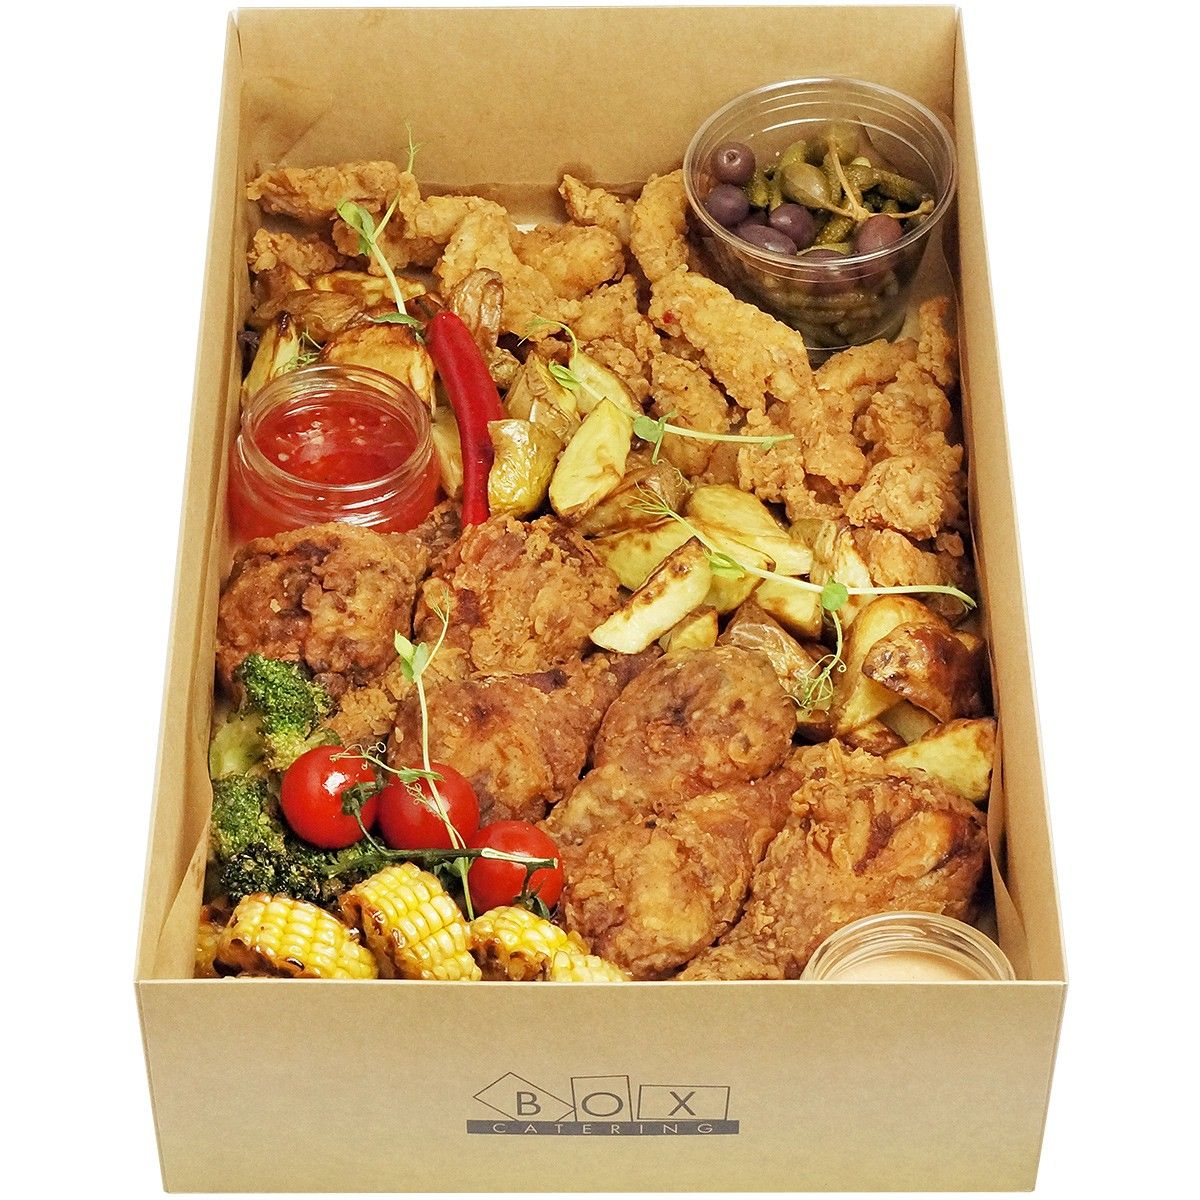 Fried chicken big box фото 3